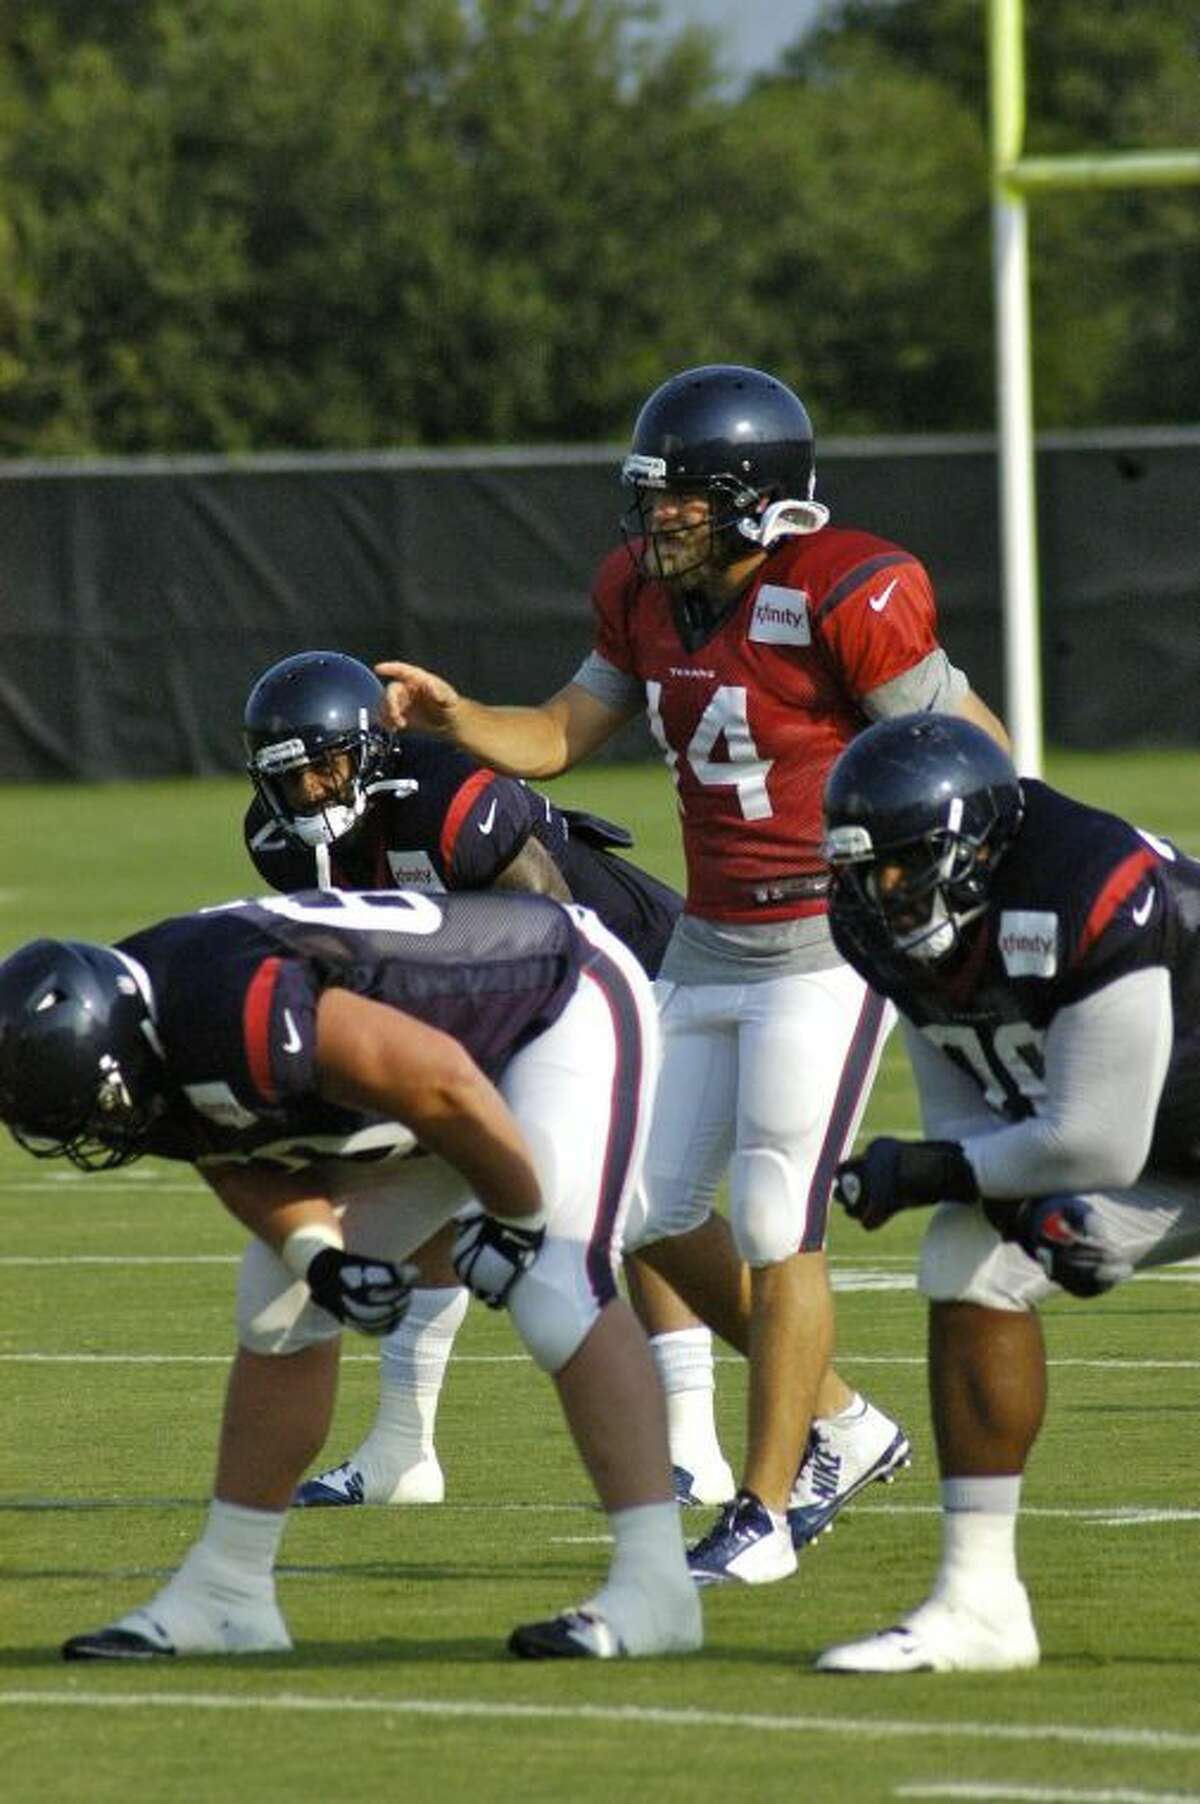 Texans starting QB Ryan Fitzpatrick gives signals during practice at the Houston Methodist Training Center.